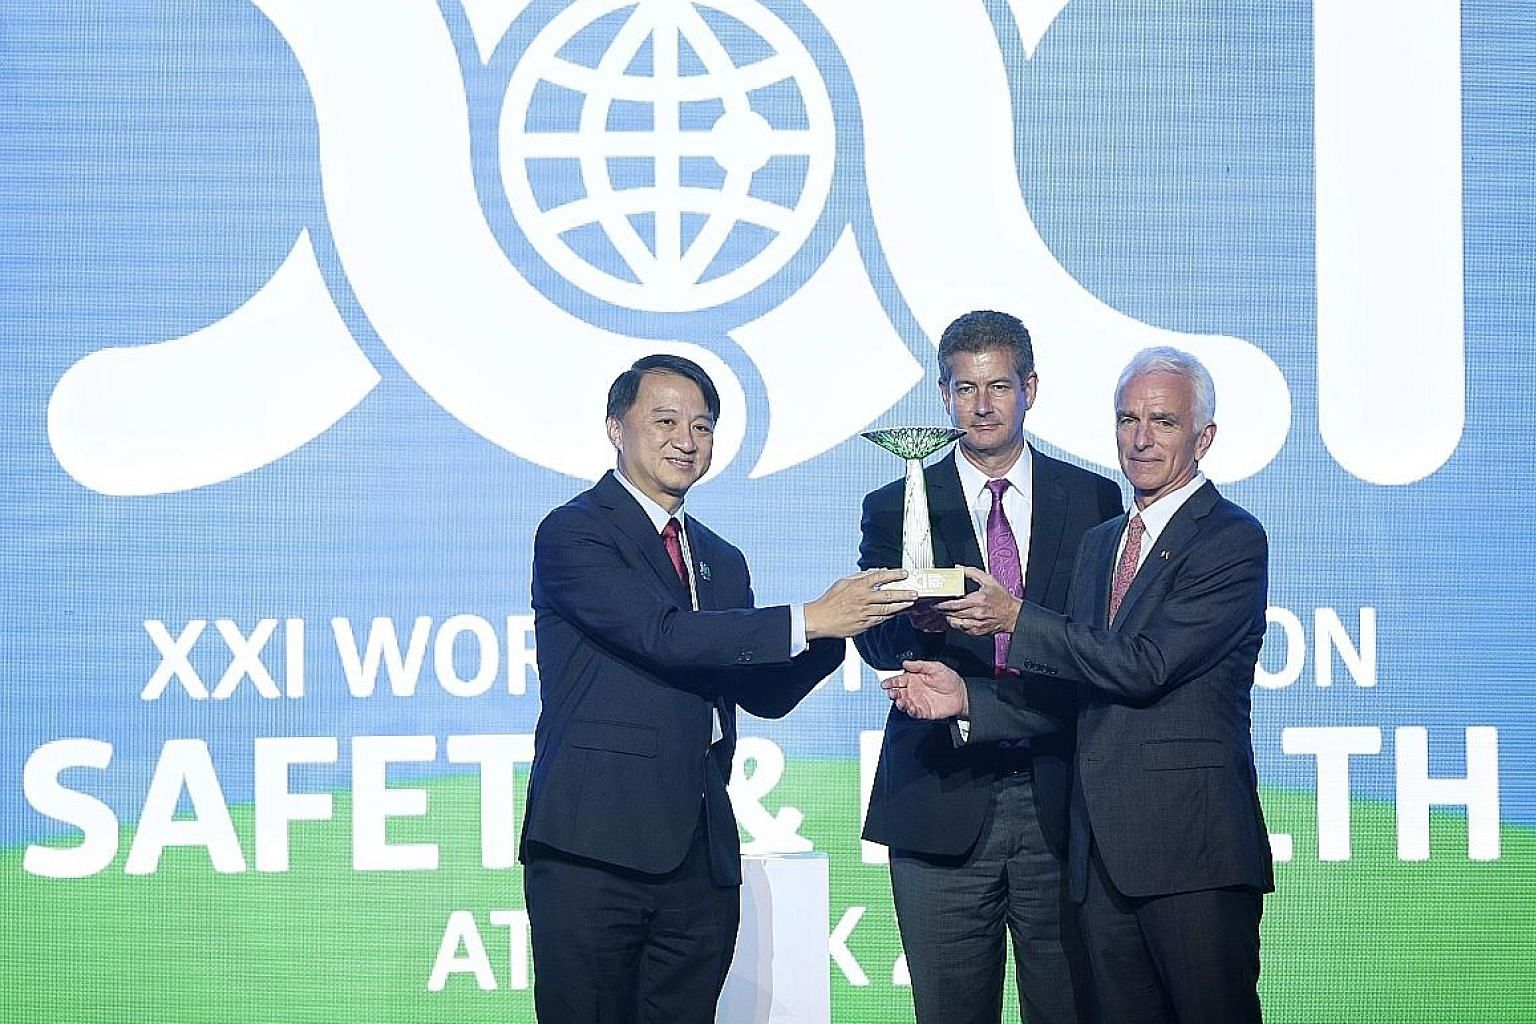 Singapore Commissioner for Workplace Safety and Health Ho Siong Hin (left) presenting a Supertree replica to Canadian Centre for Occupational Health and Safety chief Gareth Jones (centre) and Institute for Work and Health president Cameron Mustard as